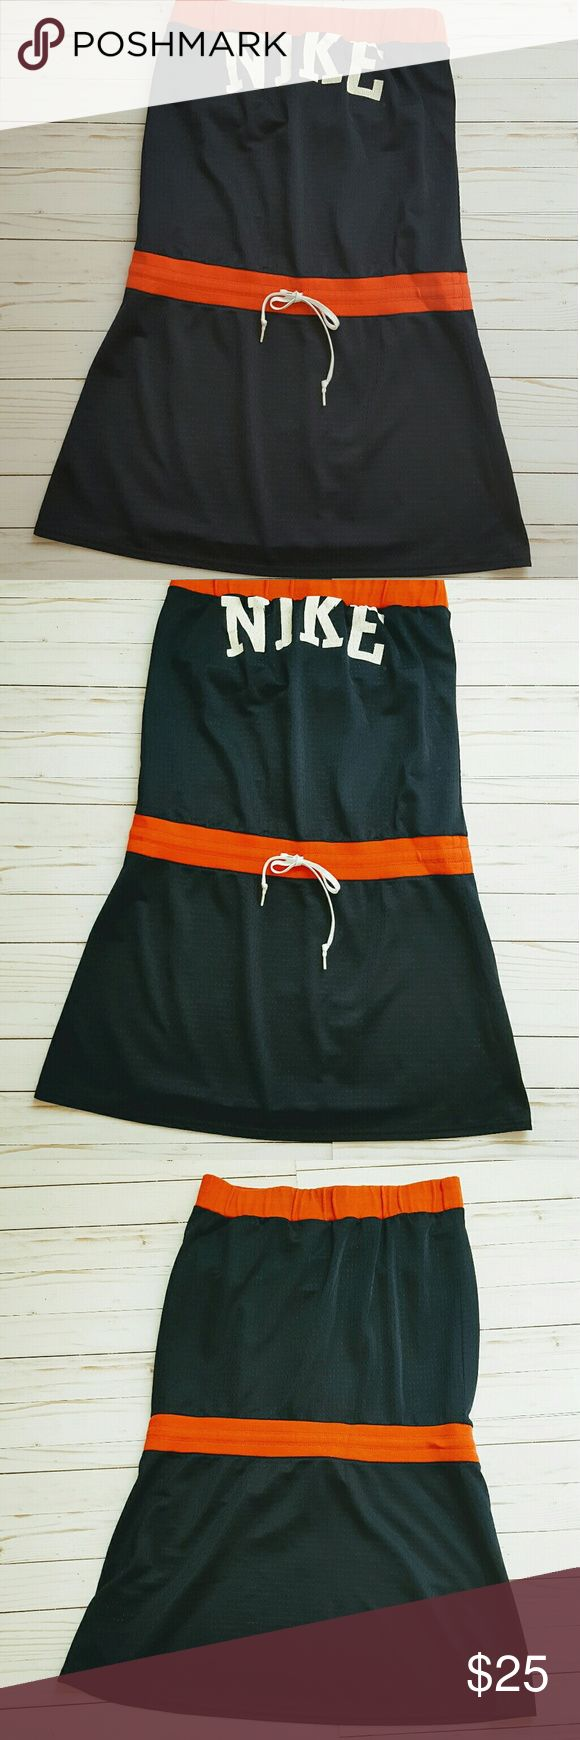 Nike Tennis dress Navy and Orange  Sz Lg Nike Tennis dress Navy and Orange Sz Lg with built-in bra, has adjustable pull ties at the waist and top. In great pre owned condition no trades please reasonable offers. Thanks Nike Dresses Mini